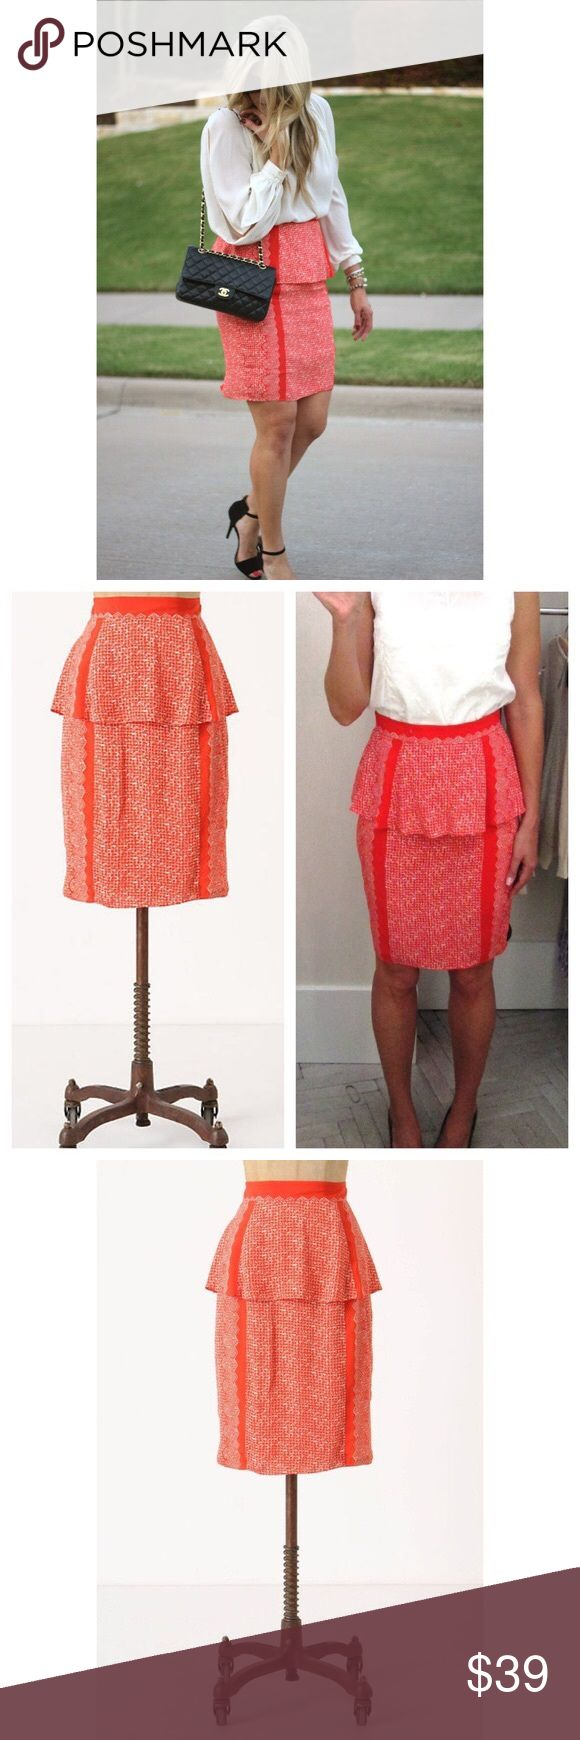 """Anthropologie Broken Levels Skirt $138 🌈 Size 4. Plenty by Tracy Reese from Anthropologie. Originally $138. """"A flutter of playful peplum endears itself to this pencil's silhouette."""" Rear zipper. Lined. Body is 100% rayon. Length is 23.5"""" according to the Anthropologie website. Color is an orange / red so I listed it as both. 🌈 Anthropologie Skirts"""